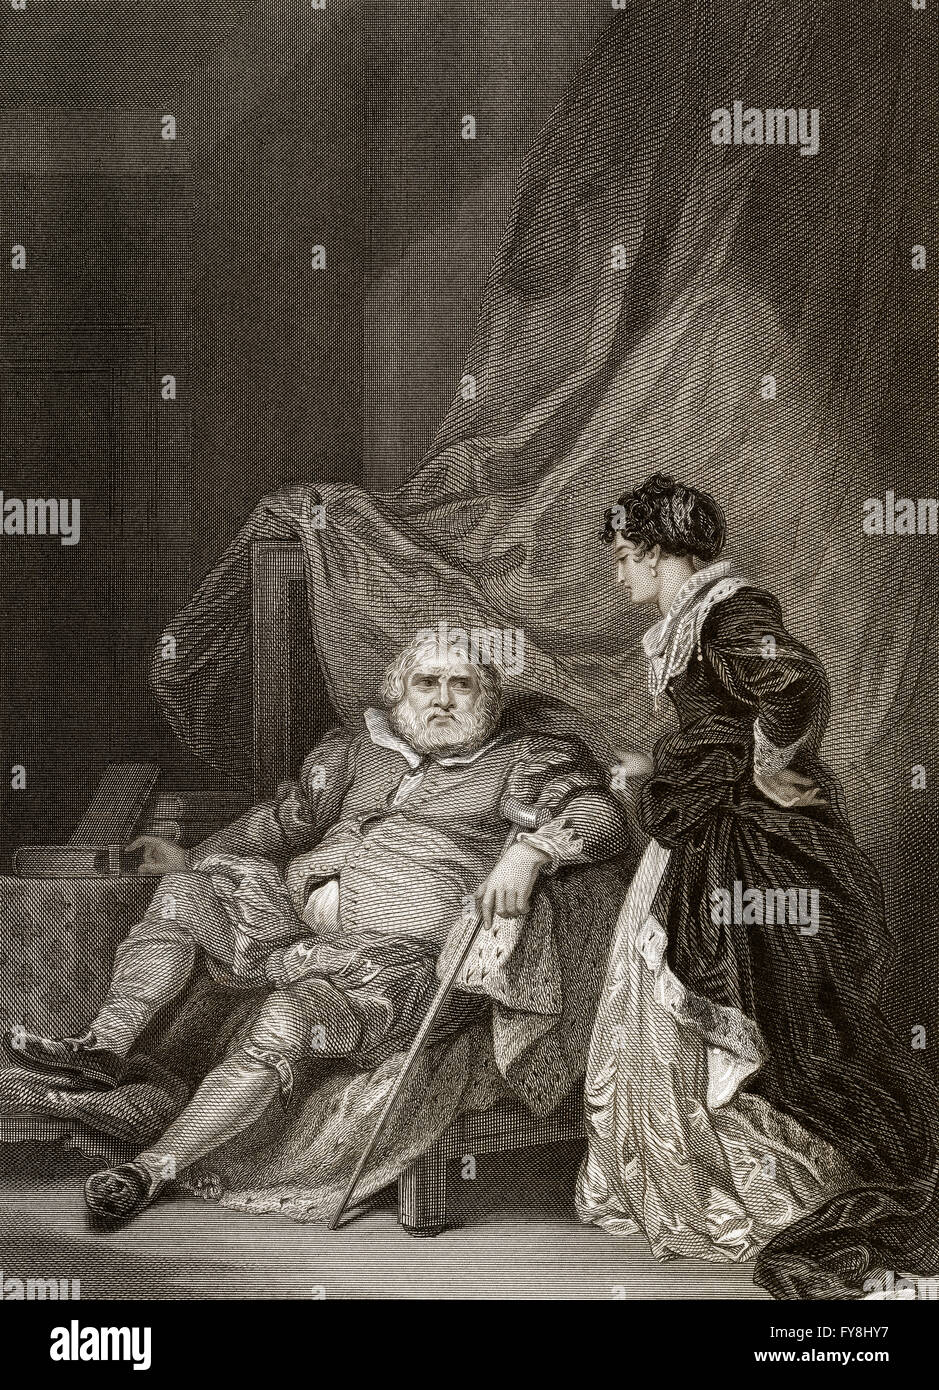 Henry VIII,  1491-1547, King of England and Catherine Parr, 1512-1548, his last wive - Stock Image